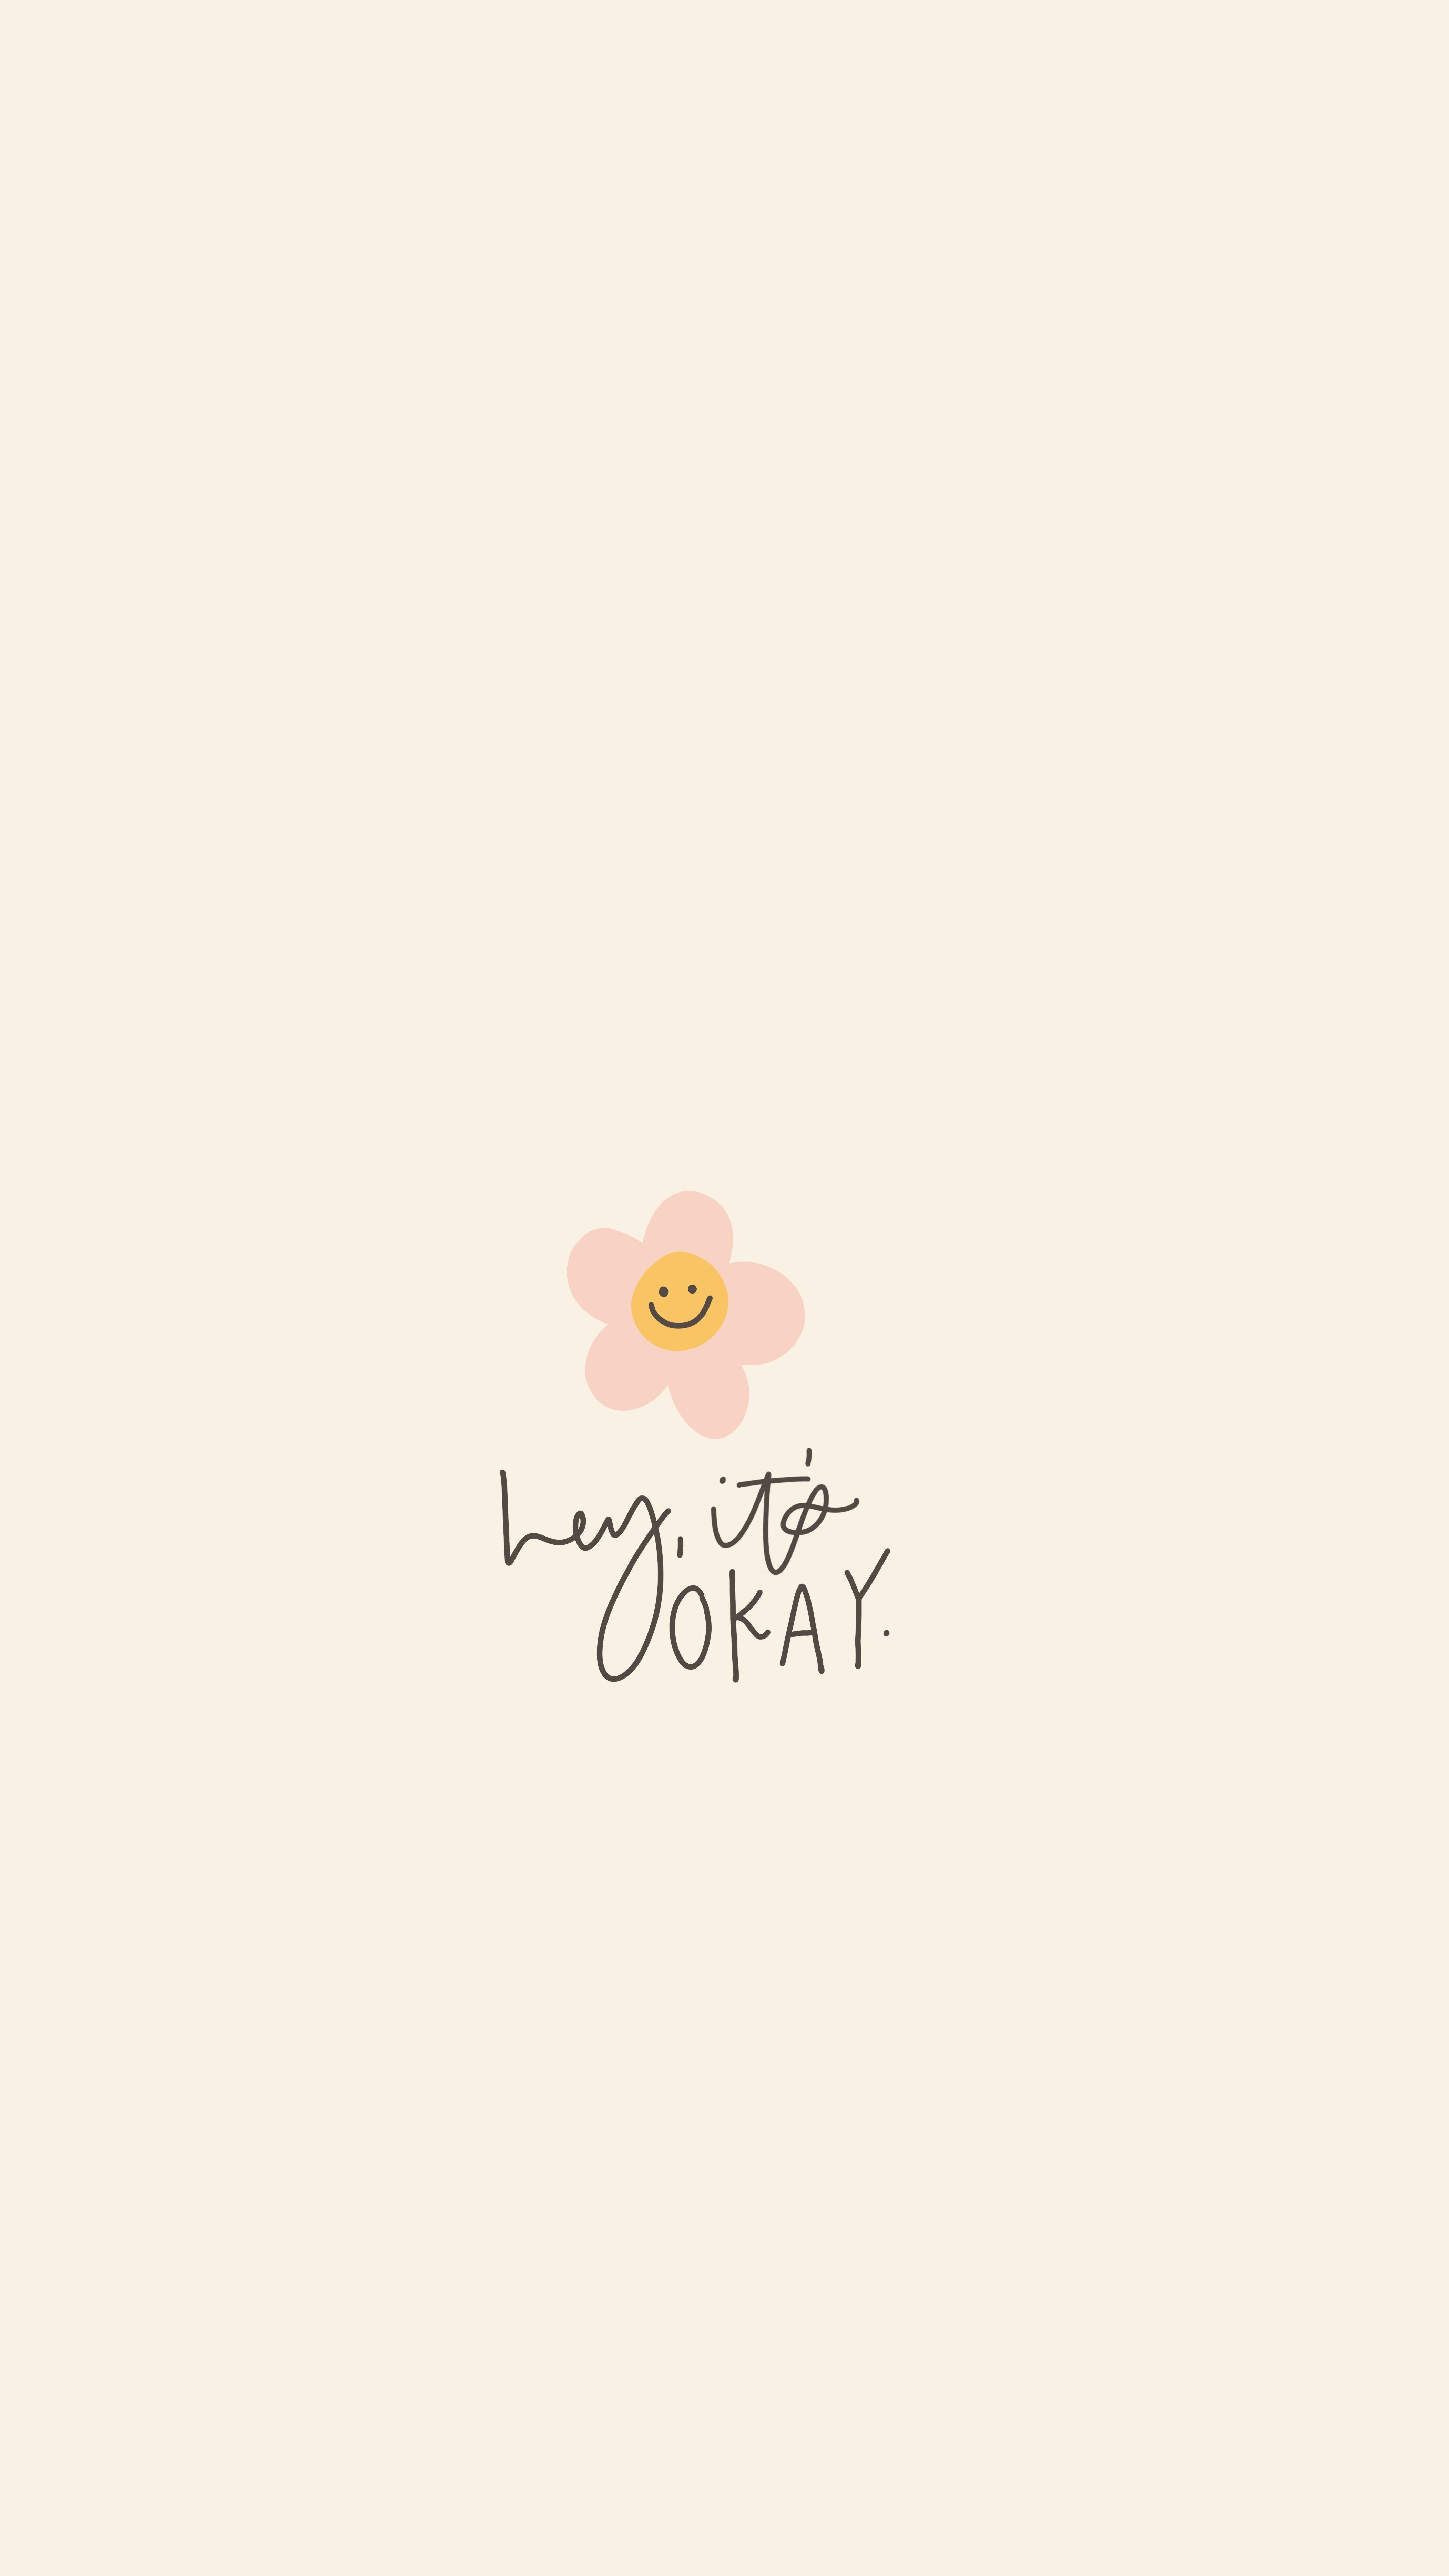 My May Flowers Drawing Series Inspirational Quote Hey It S Okay With A Smiley Face Fl Ipad Wallpaper Quotes Wallpaper Quotes Aesthetic Iphone Wallpaper